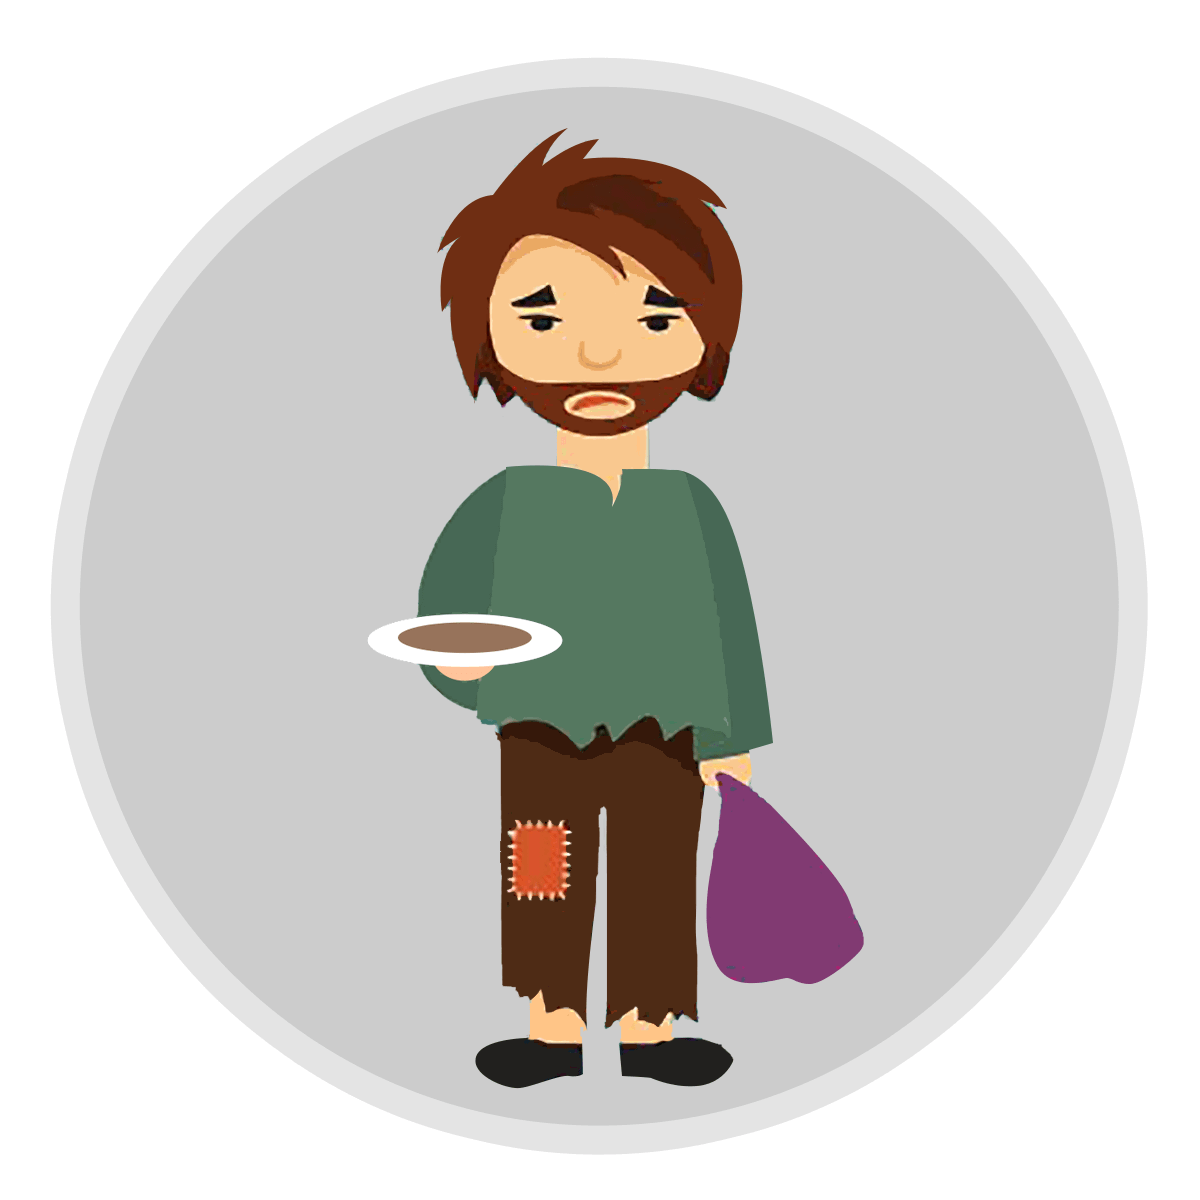 jpg free  collection of png. Homeless clipart